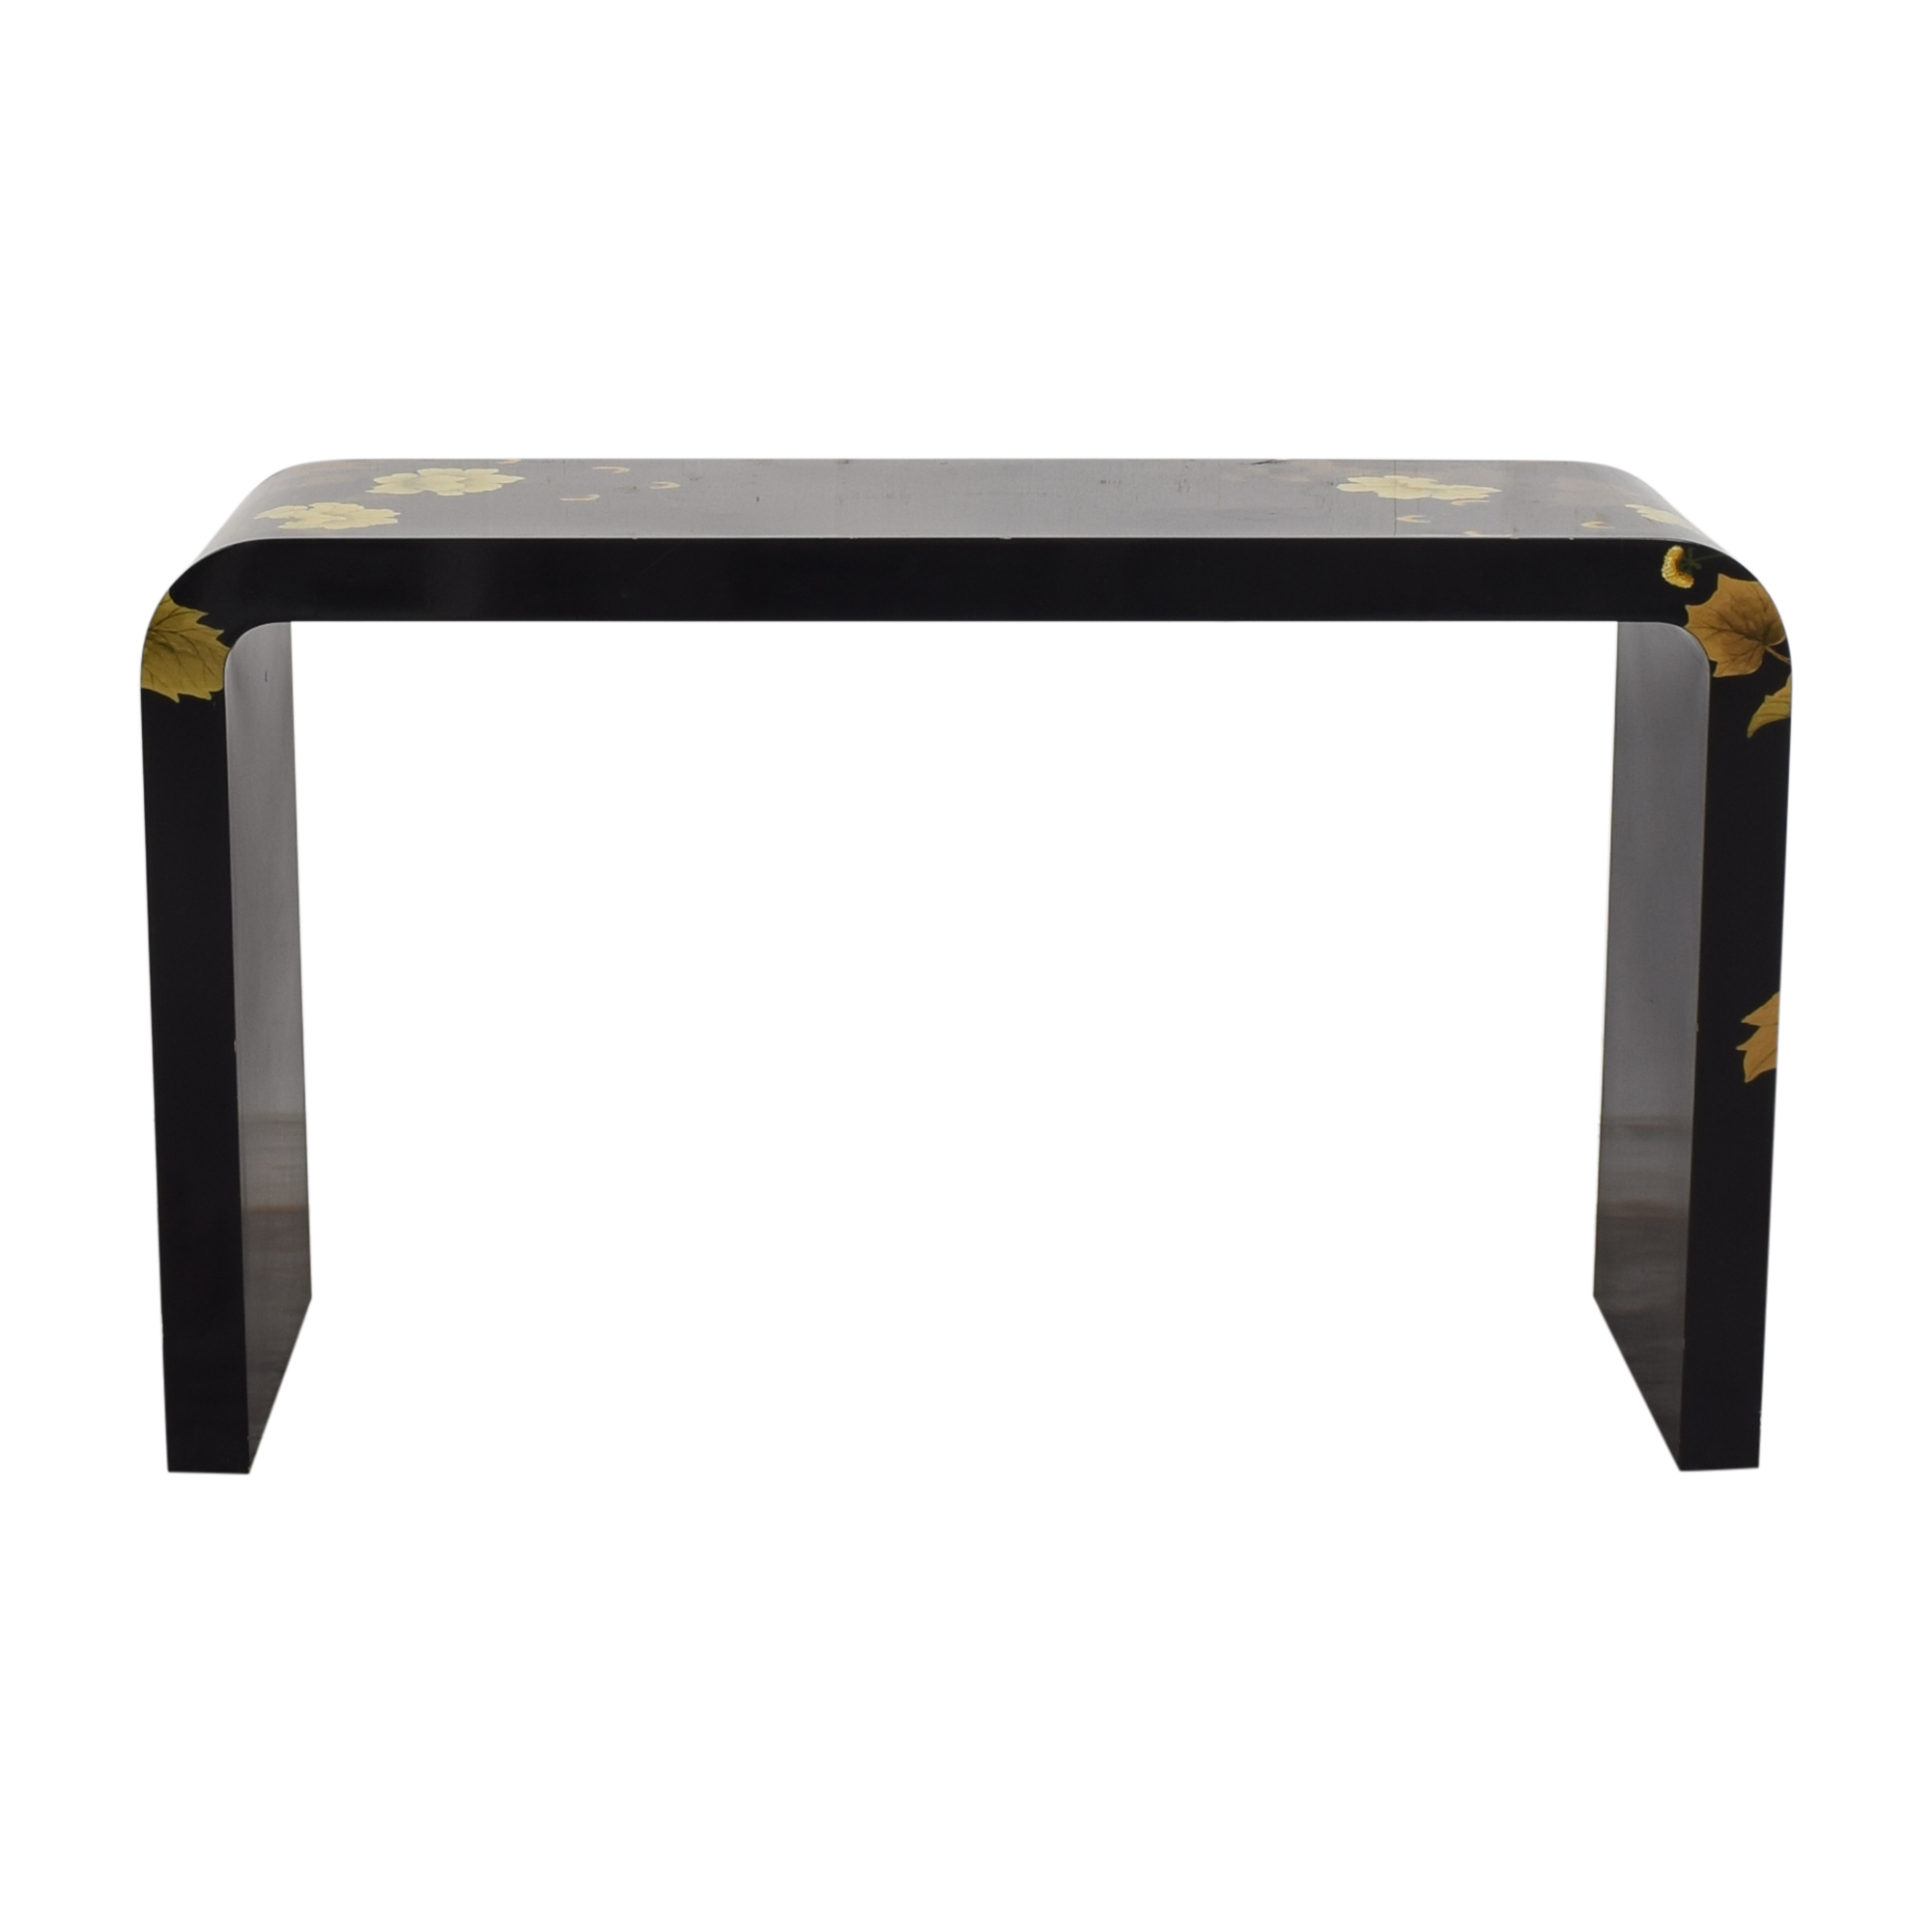 Decorative Floral Waterfall Console Table nyc